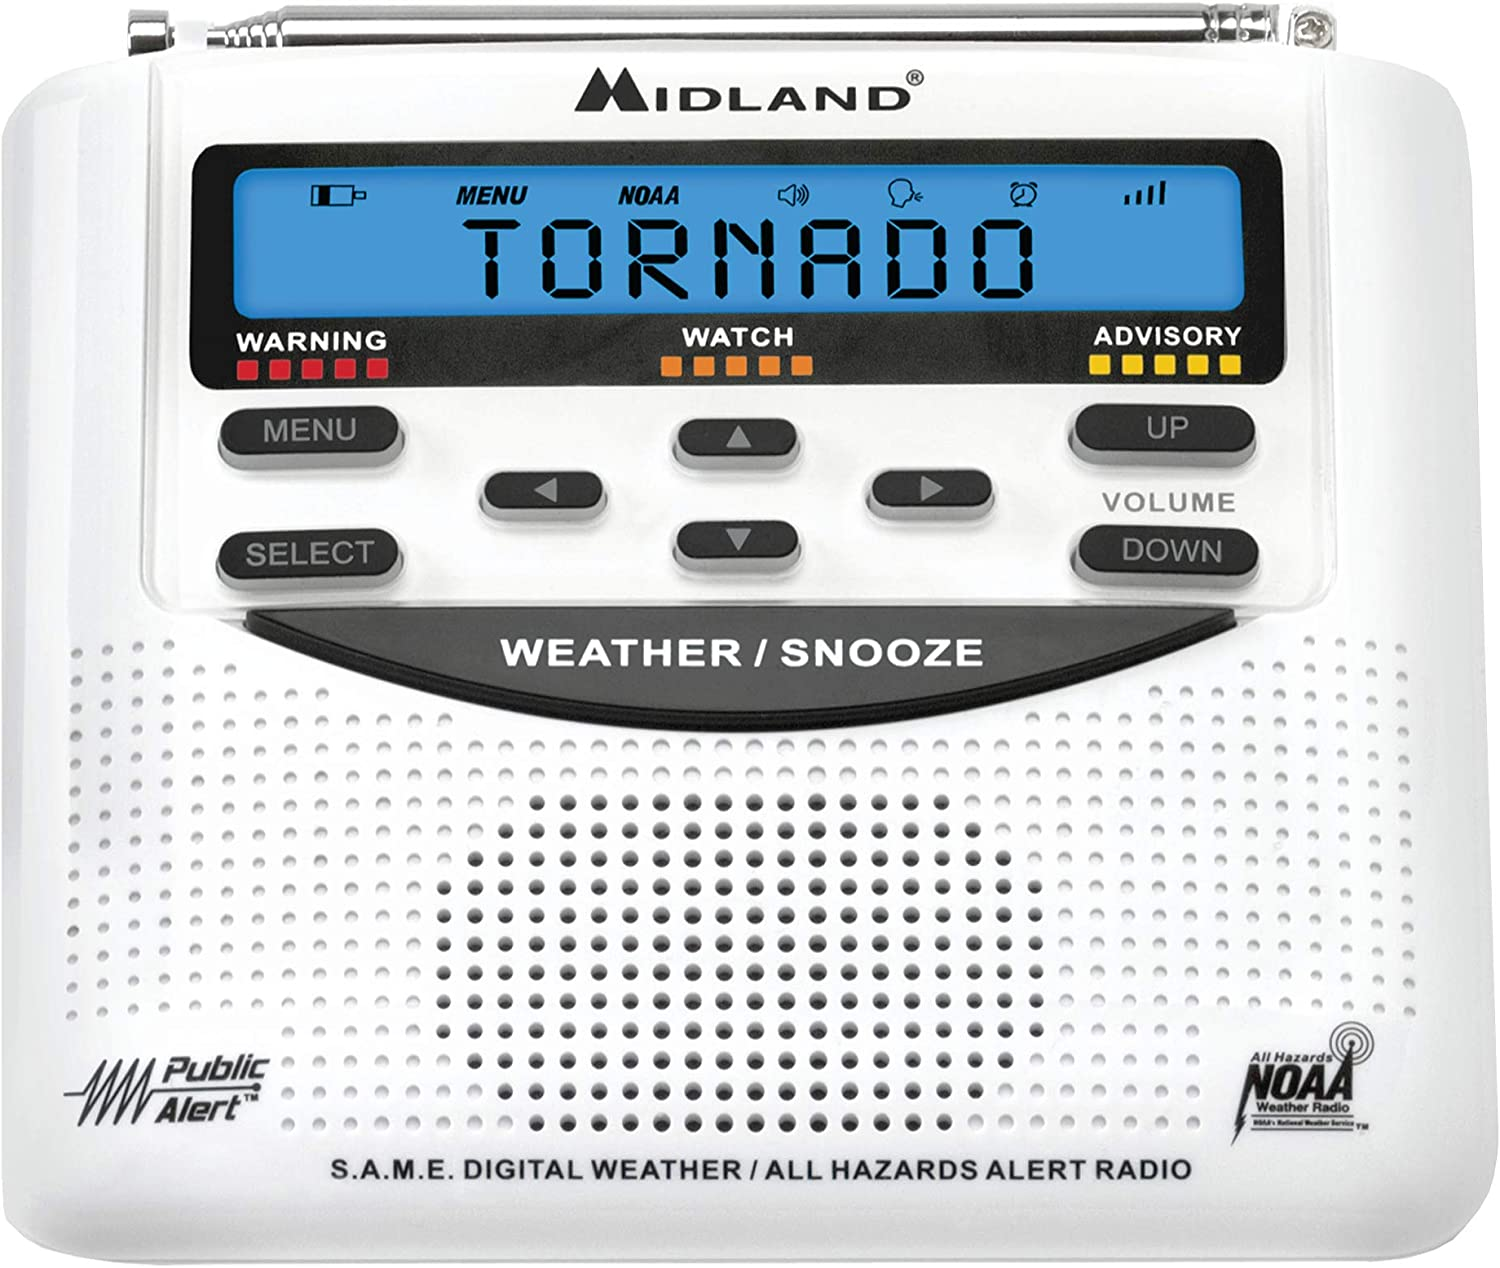 Midland - WR120B/WR120EZ - NOAA Emergency Weather Alert Radio - S.A.M.E. Localized Programming, Trilingual Display, 60+ Emergency Alerts, & Alarm Clock (WR120B - Box Packaging): Home Audio & Theater